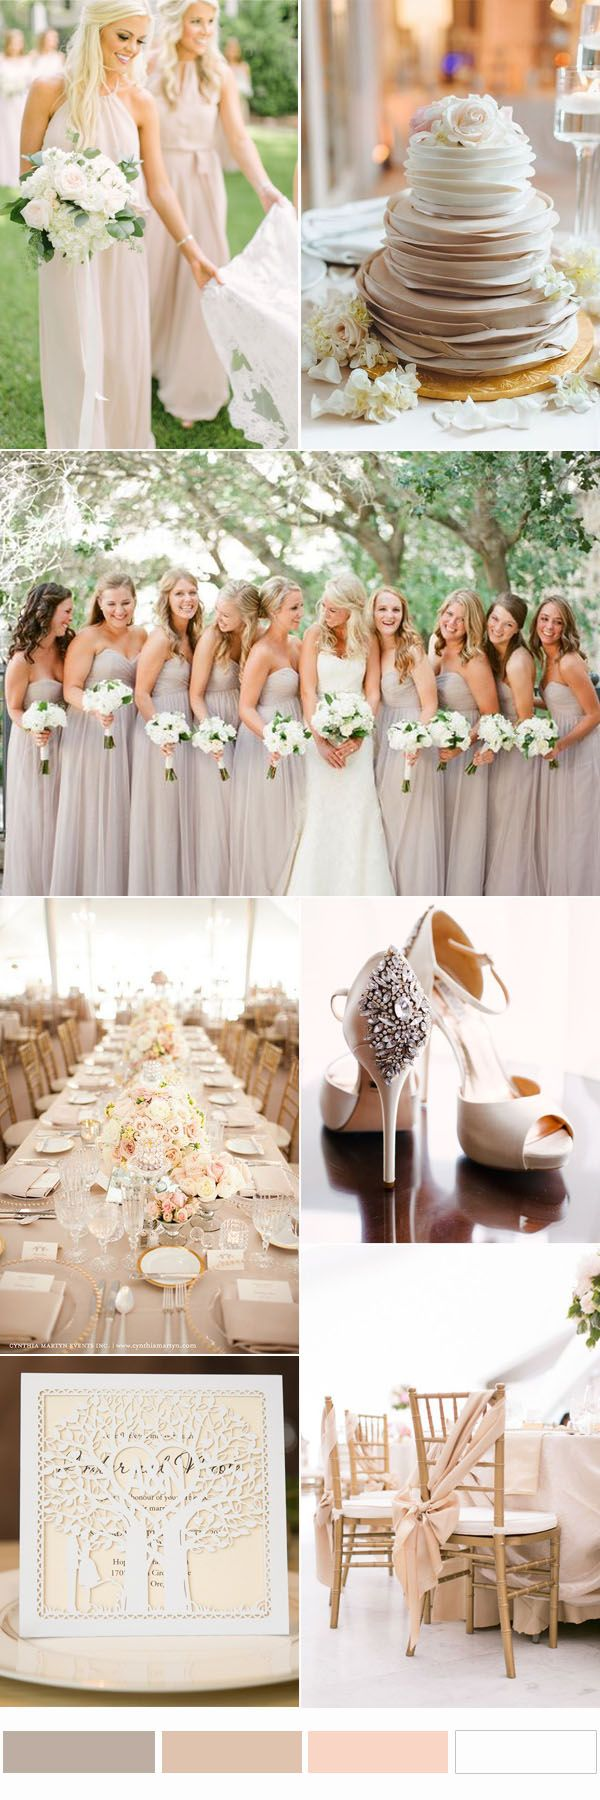 Best 25 wedding colors ideas on pinterest fall wedding colors 9 most popular wedding color schemes from pinterest to your wedding inspiration junglespirit Image collections